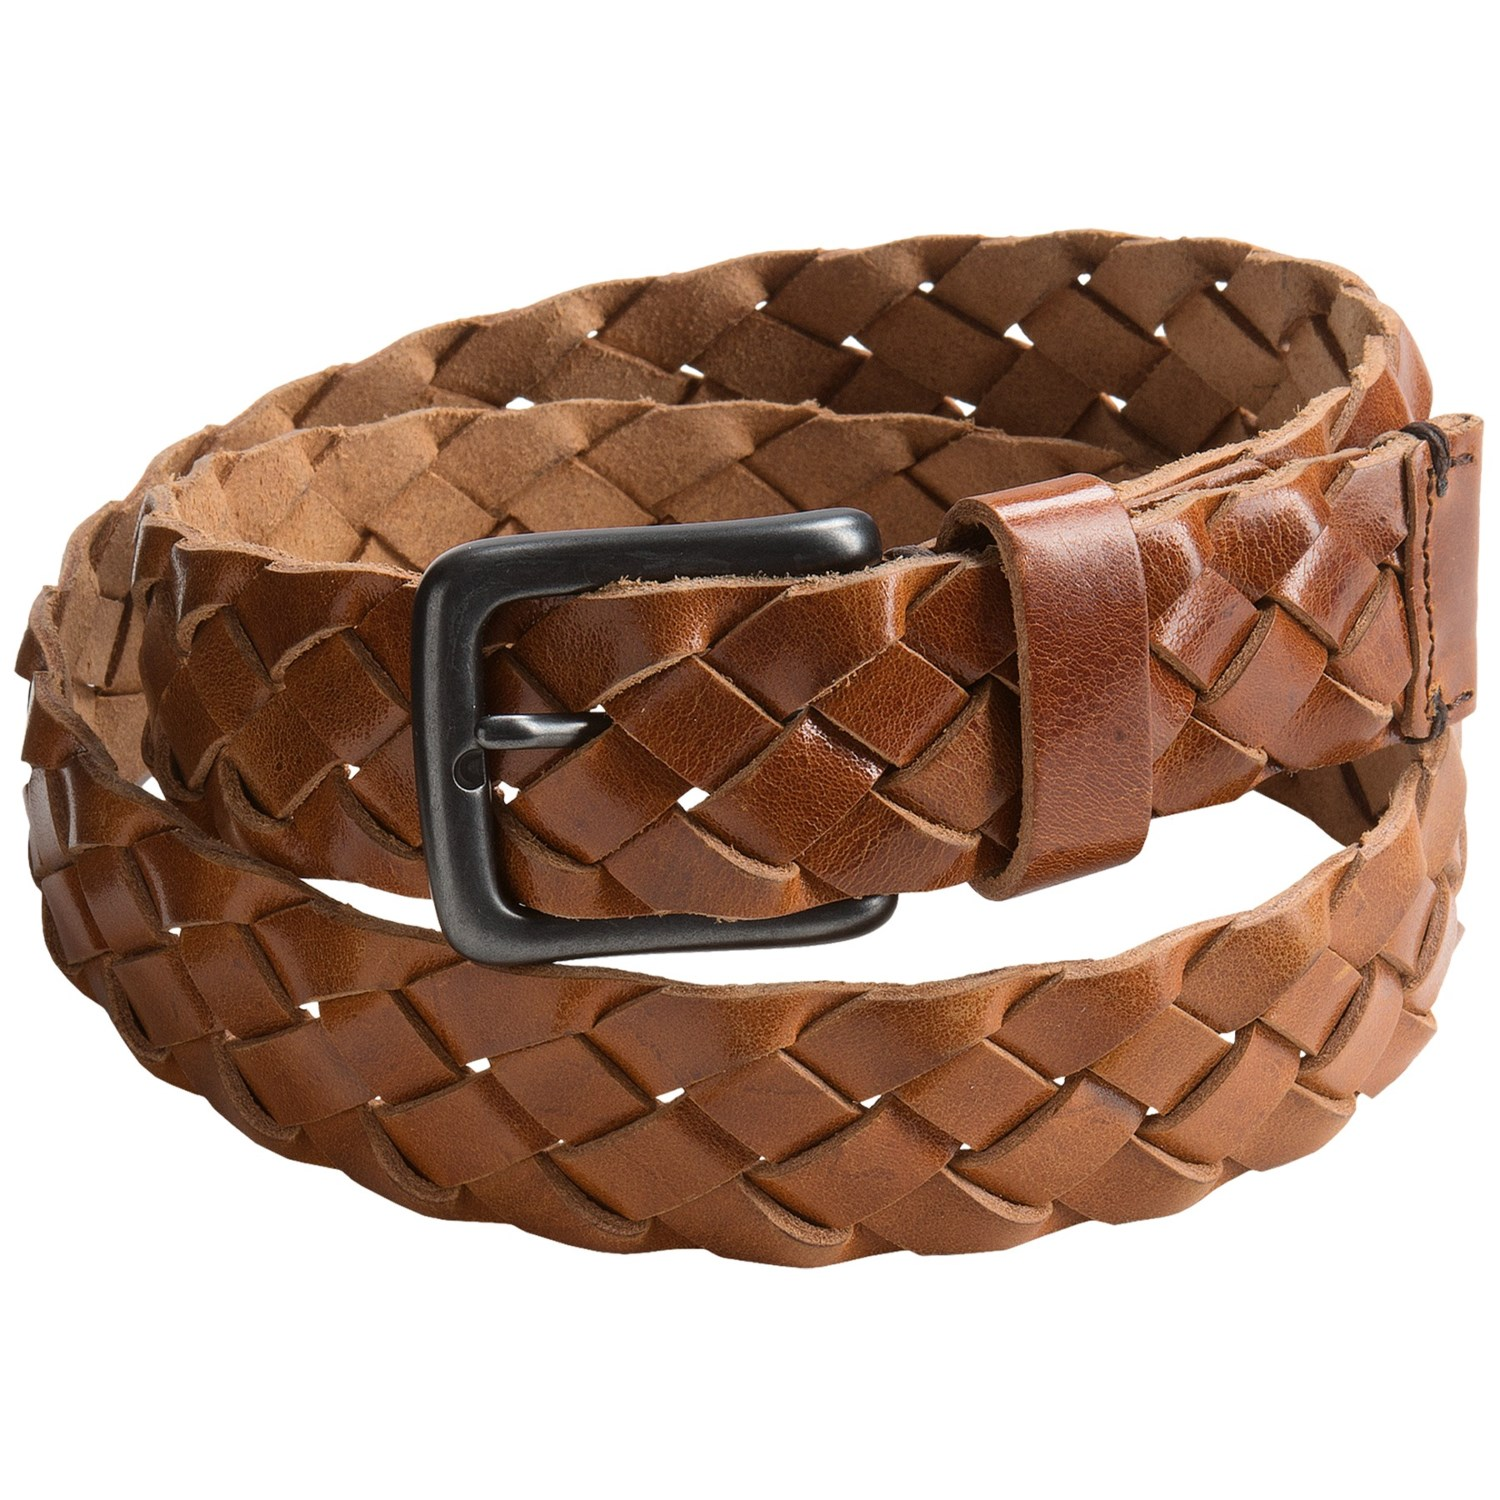 Shop eBay for great deals on Leather Braided Belts for Men. You'll find new or used products in Leather Braided Belts for Men on eBay. Free shipping on selected items.